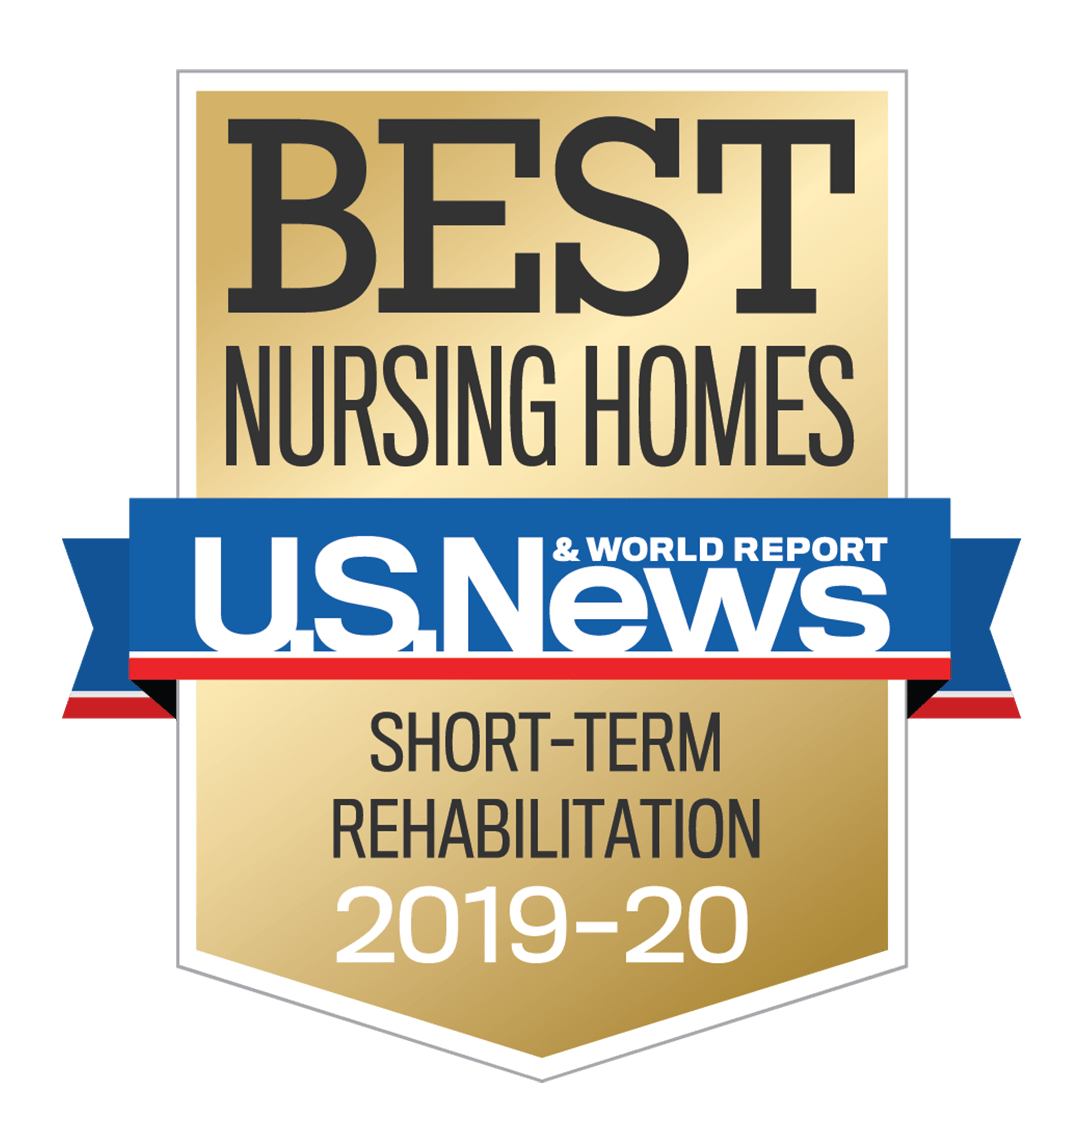 Badge Nursinghomes Shortterm 2019 20 (1)